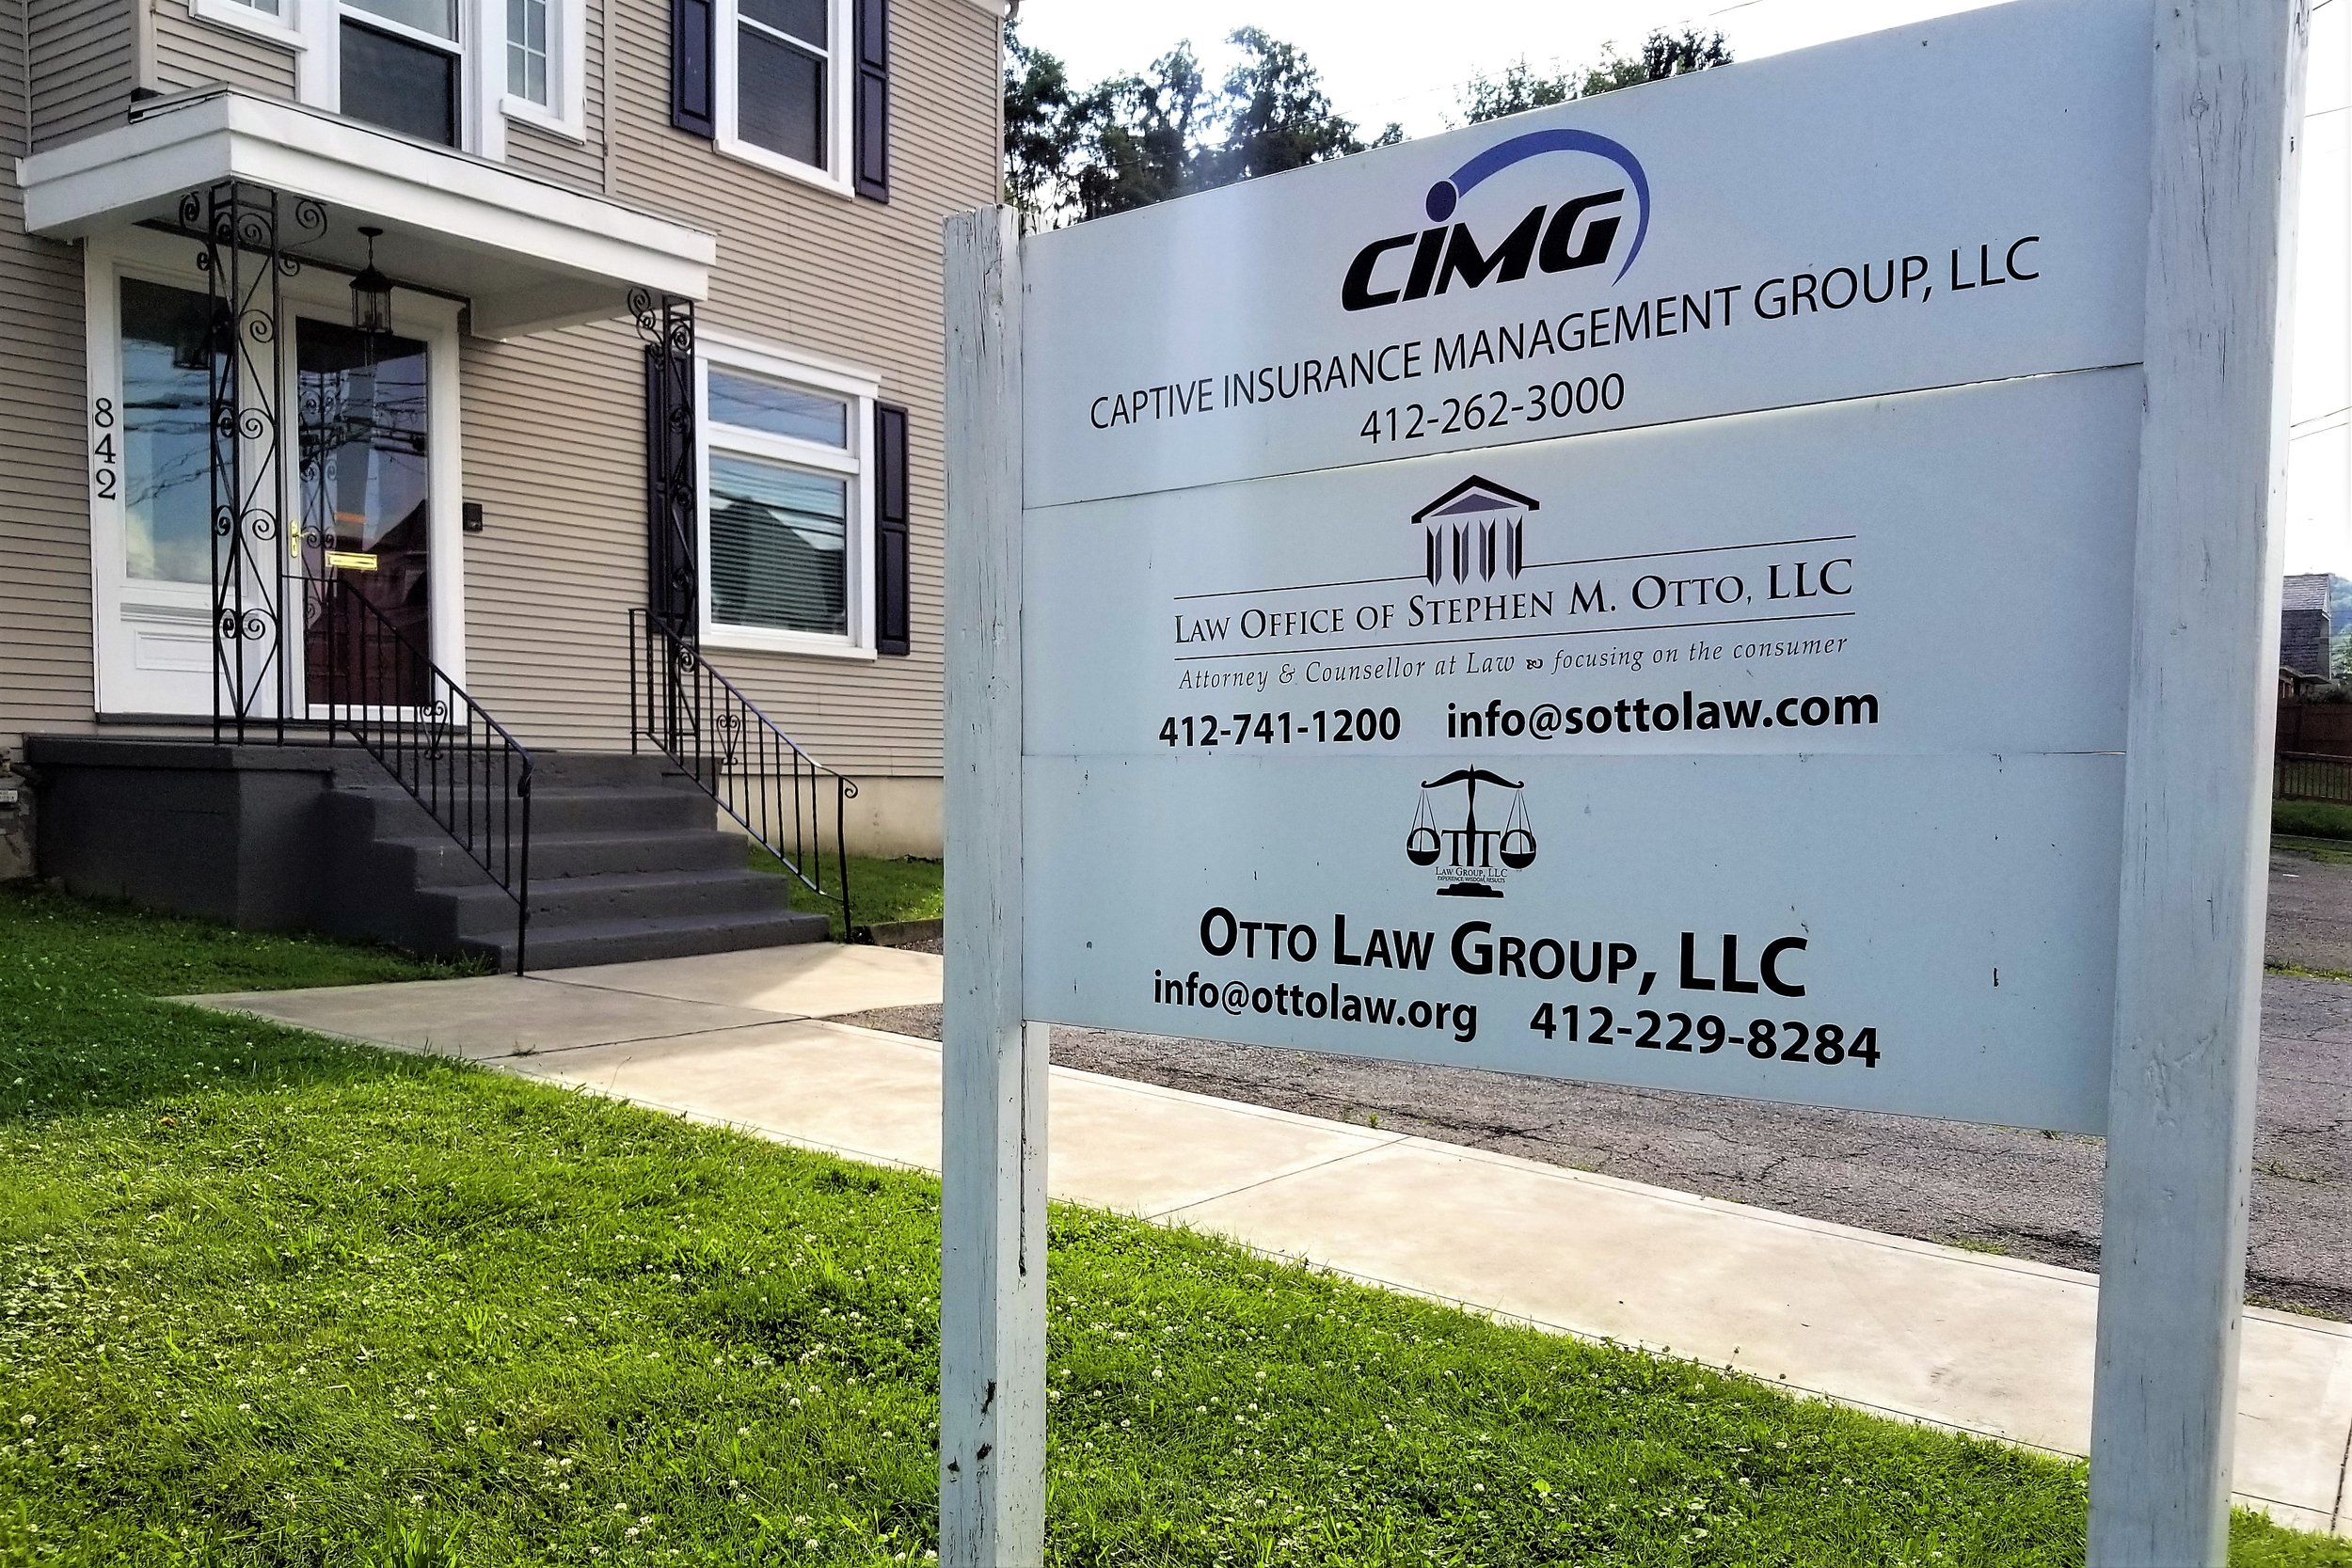 Otto Law Group LLC - 842 5th Ave,(412) 229-8284